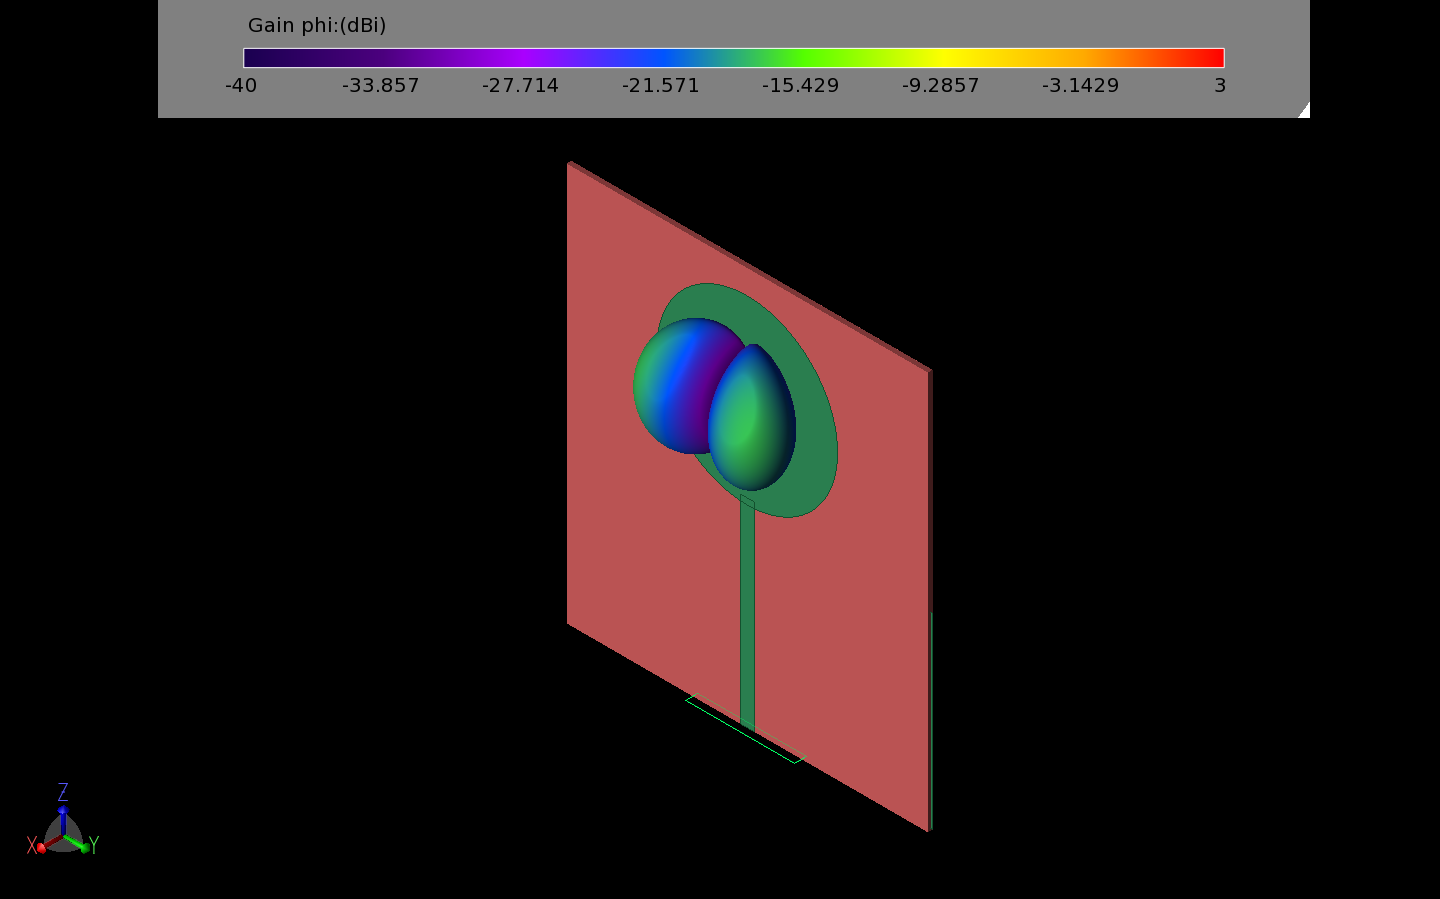 Figure 5: The cross-polarized gain pattern of the UWB monopole disk antenna has very low gain which aids to reduce any cross-talk interference in the RFID tag.